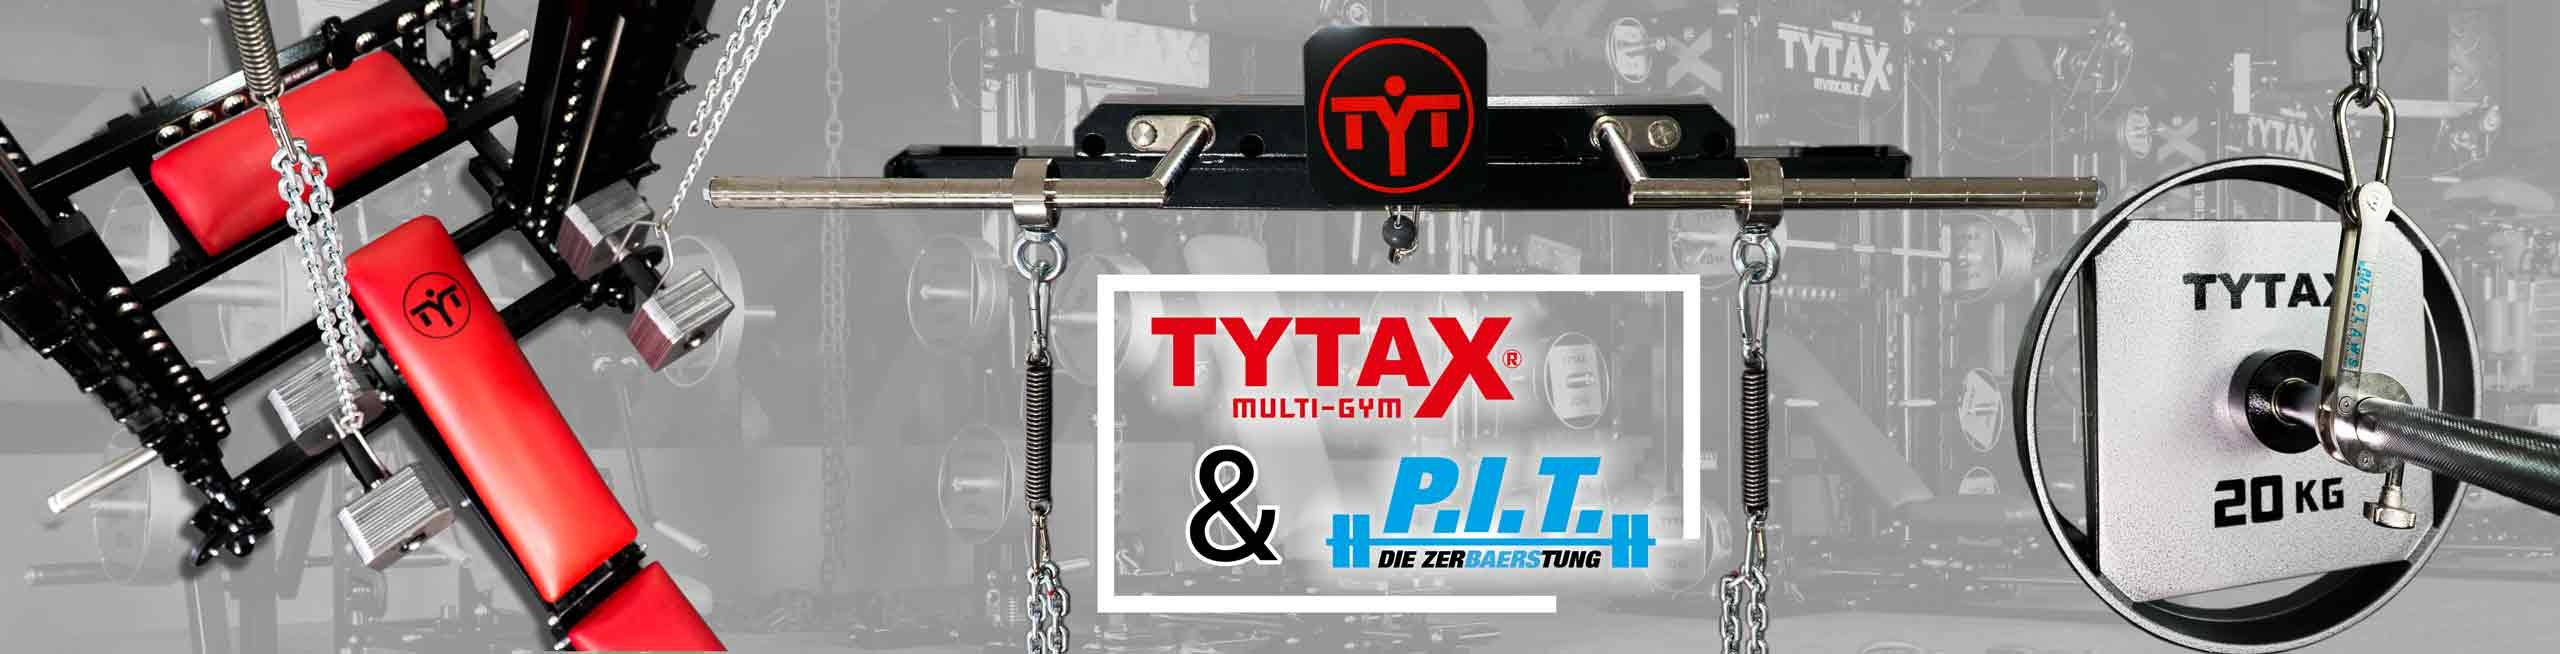 TYTAX Slider Landingpage - Option P.I.T.